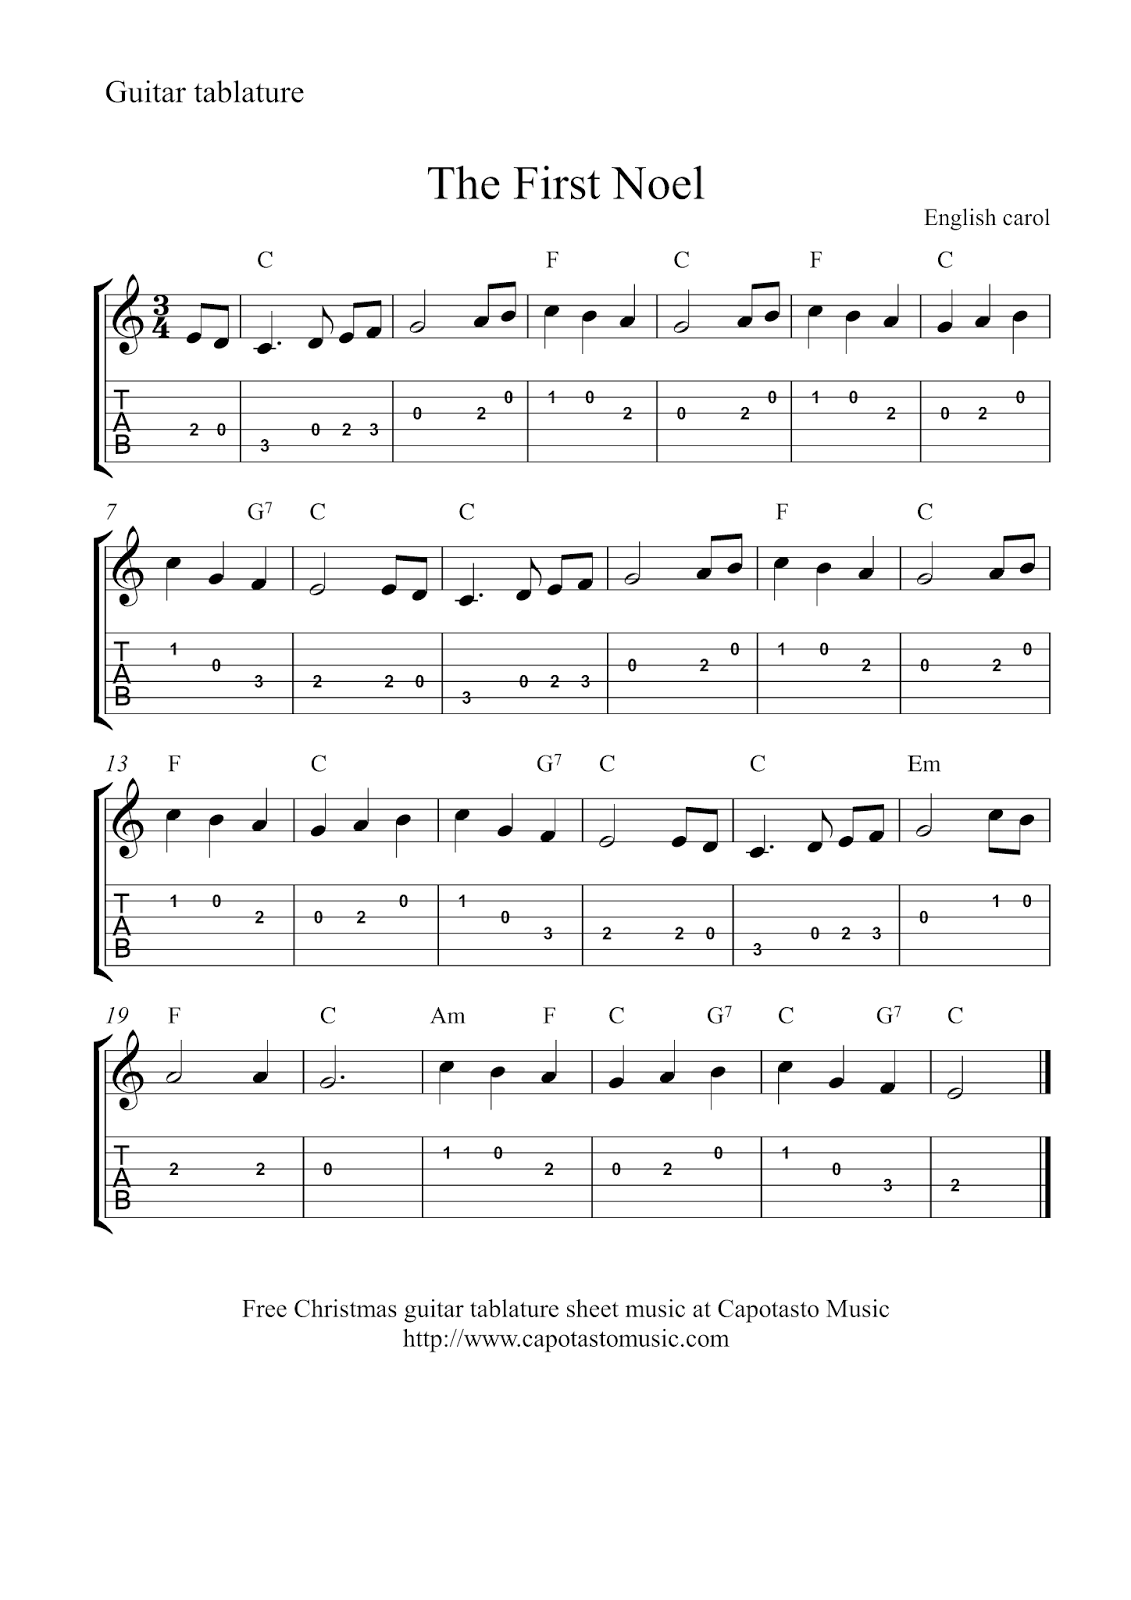 free sheet music scores guitar tab christmas in 2019 guitar sheet music sheet music guitar tabs. Black Bedroom Furniture Sets. Home Design Ideas